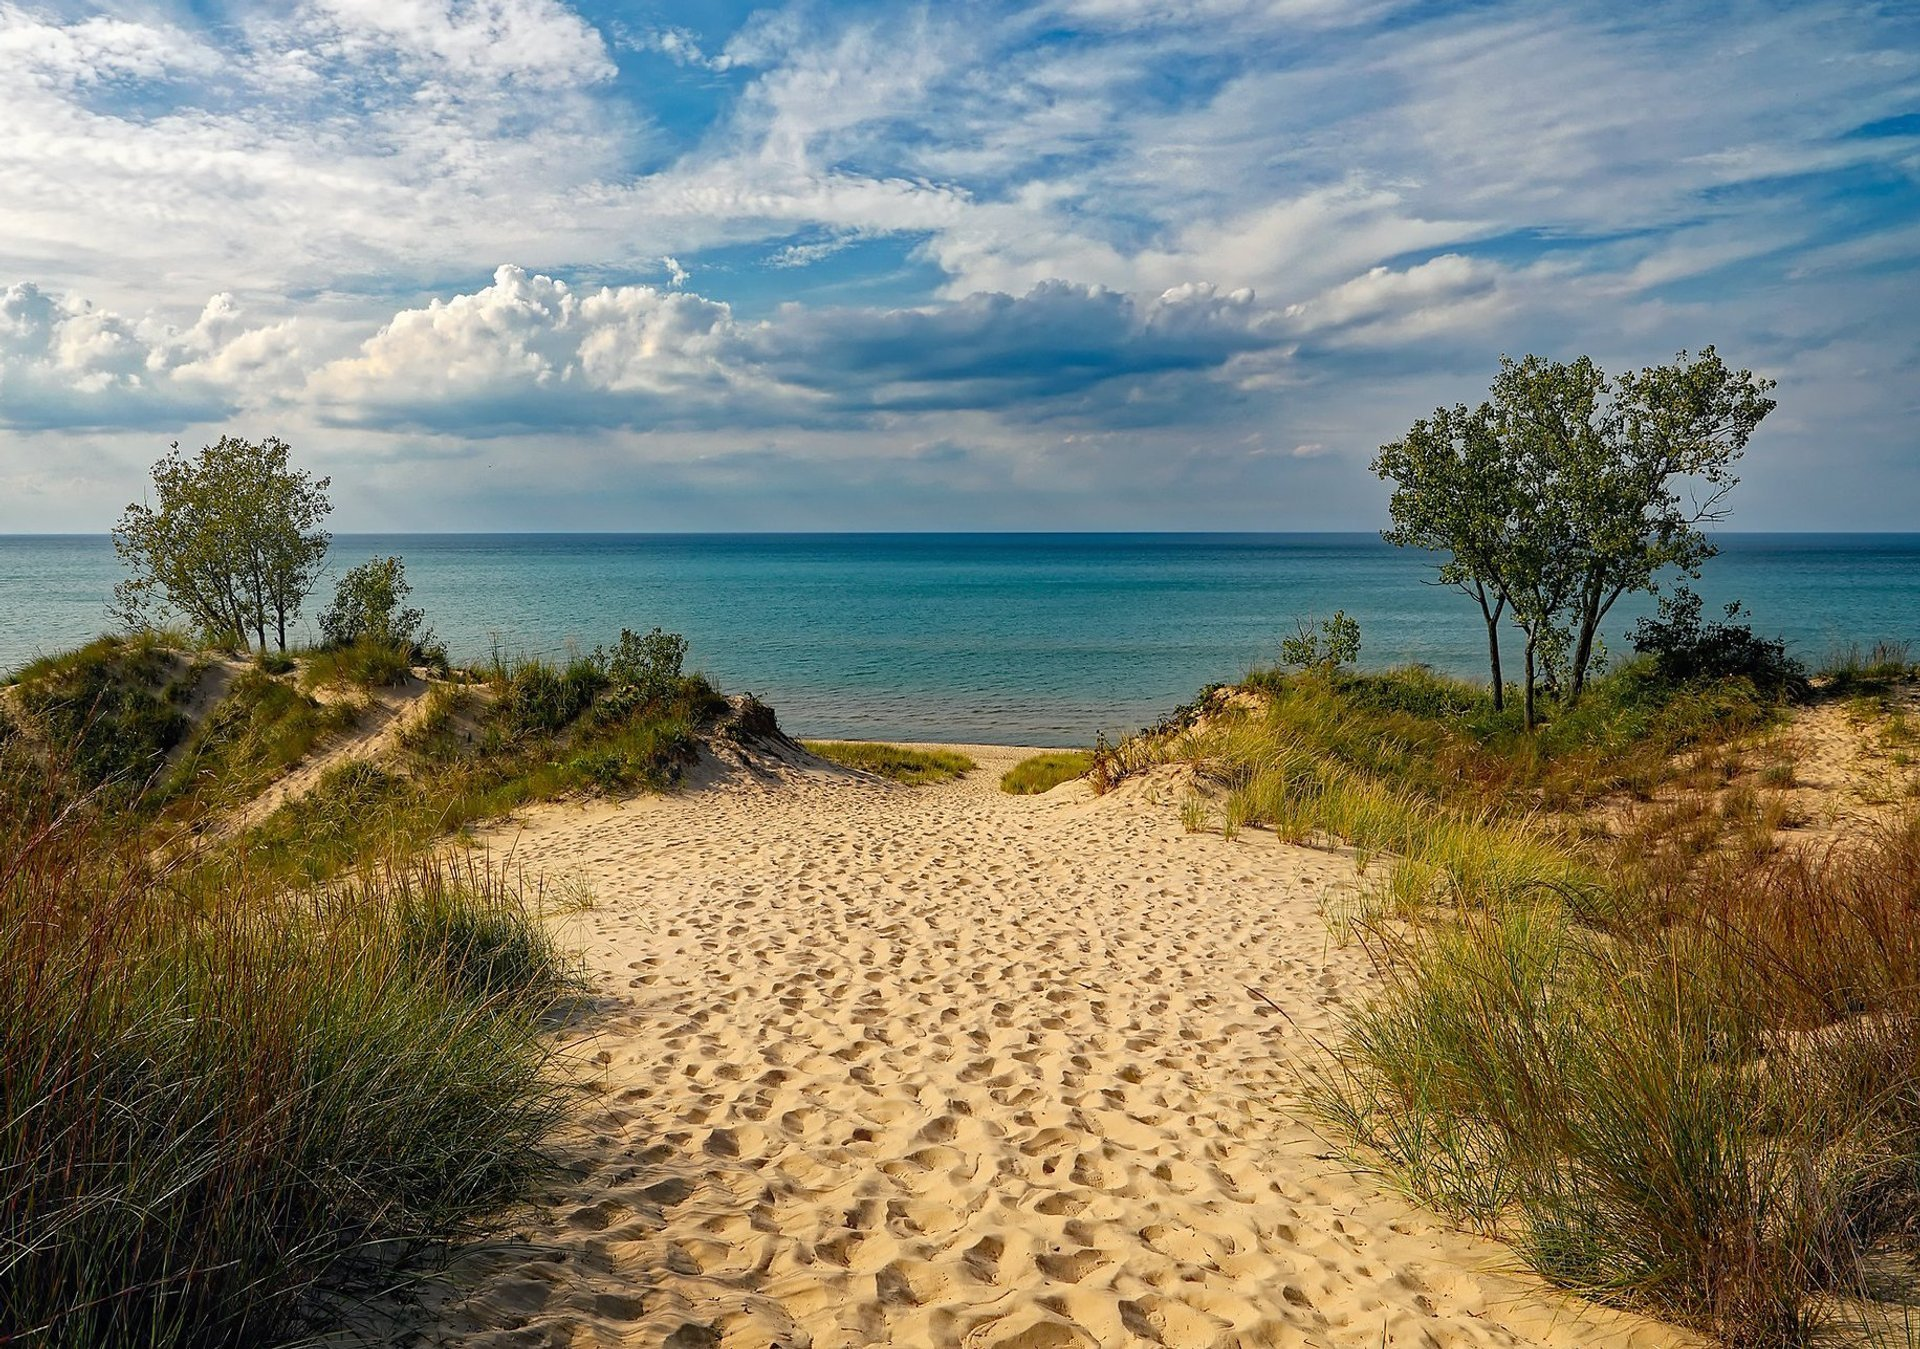 Indiana Dunes National Park in Indiana 2020 - Best Time